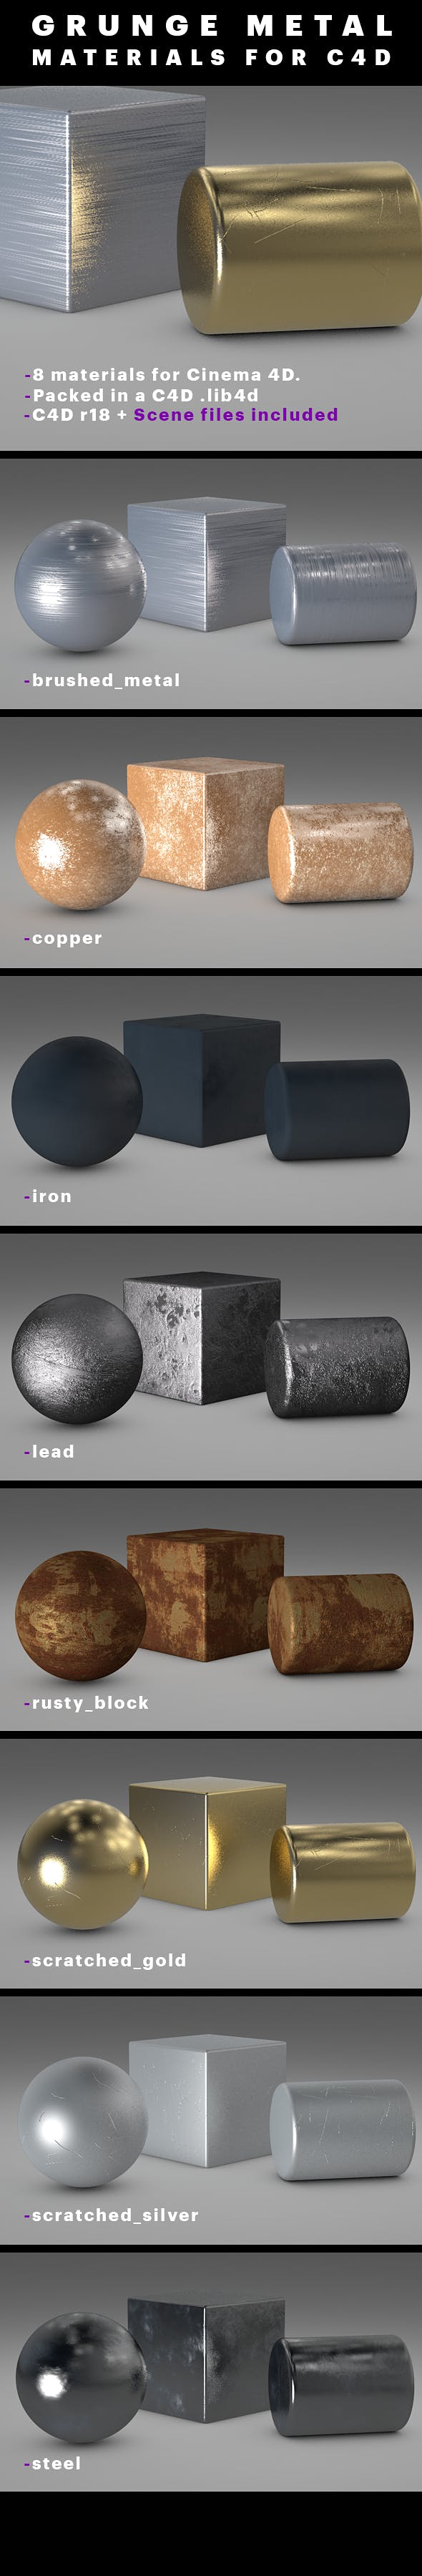 Grunge Metal Materials For C4D - 3DOcean Item for Sale